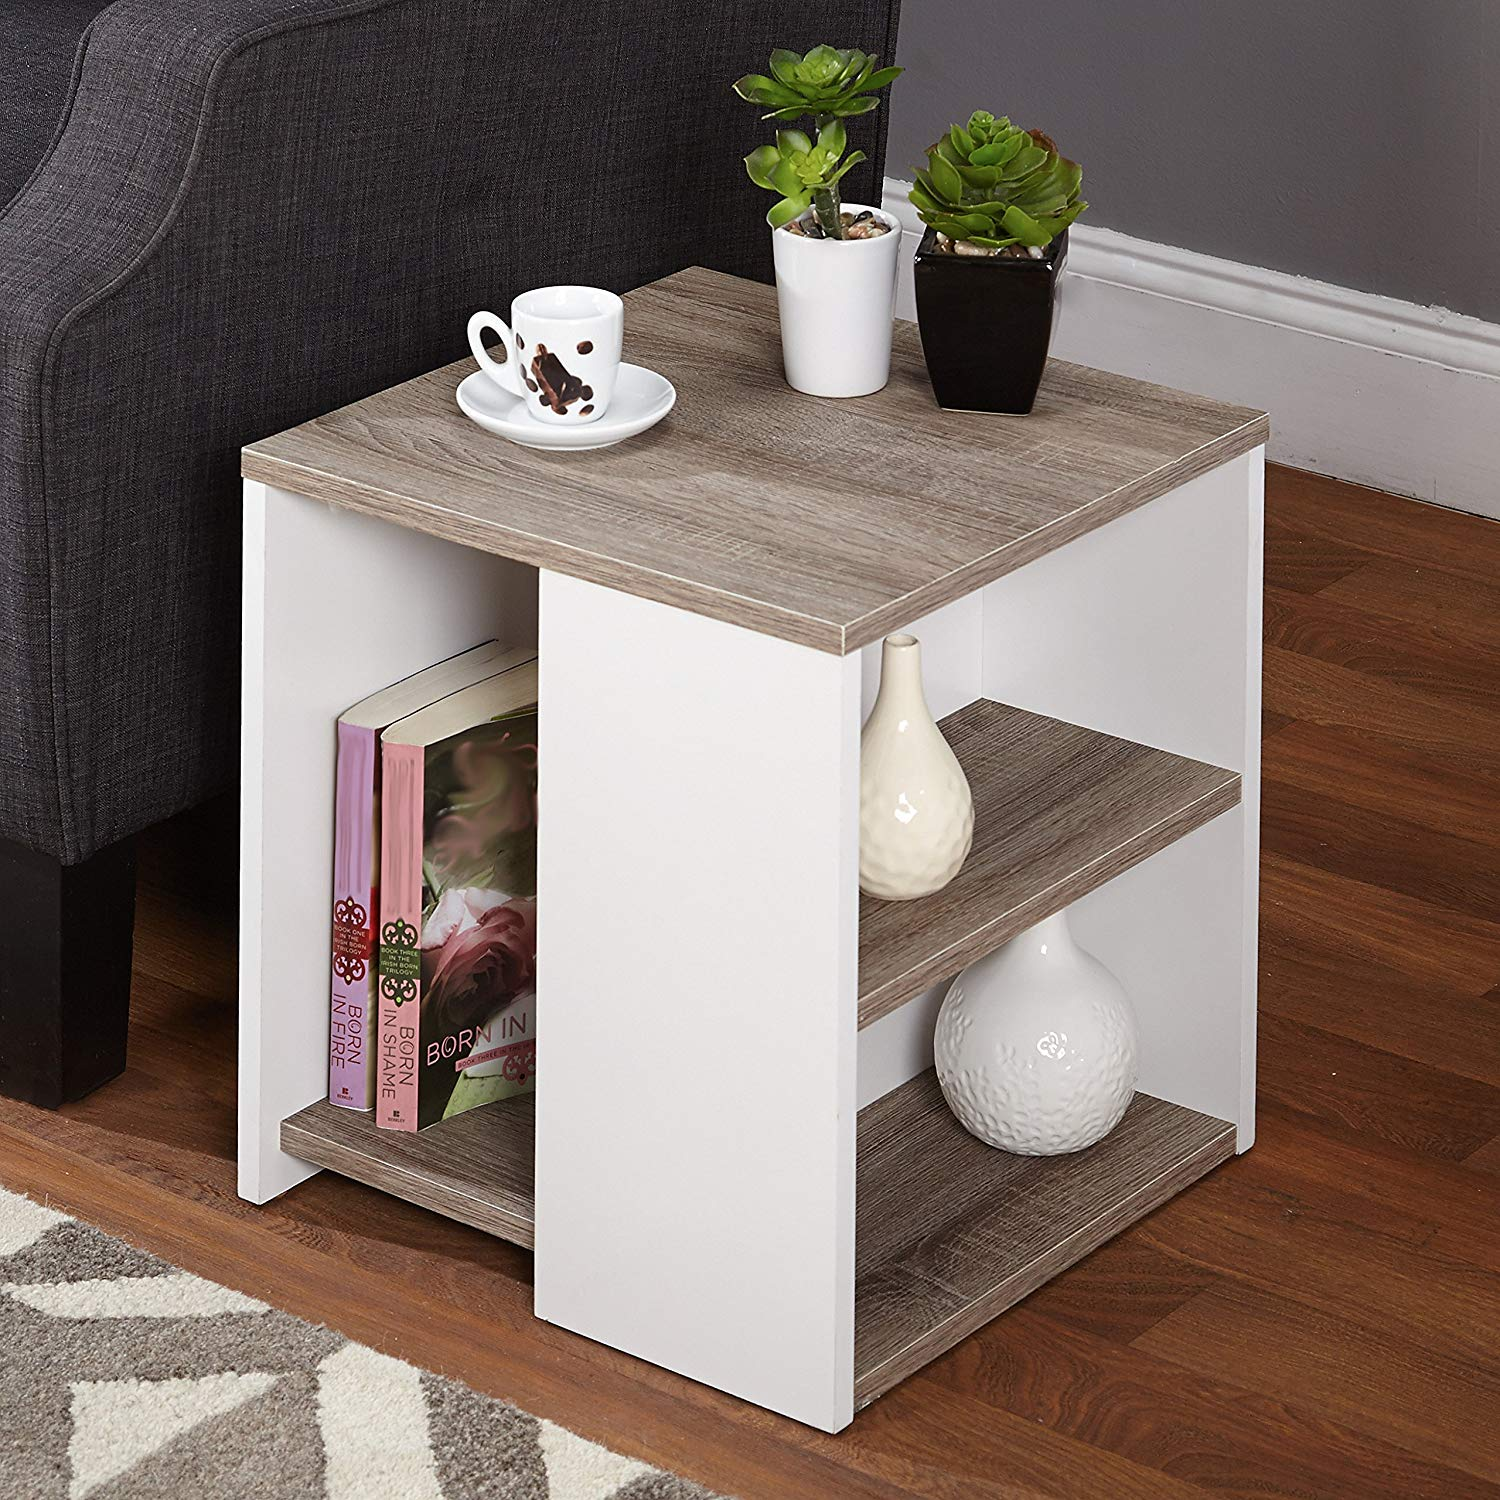 probably terrific great white oak end table mira road simple living urban sonoma kitchen tlhfl dining black wood and glass desk furniture hidden drawer nightstand small accent